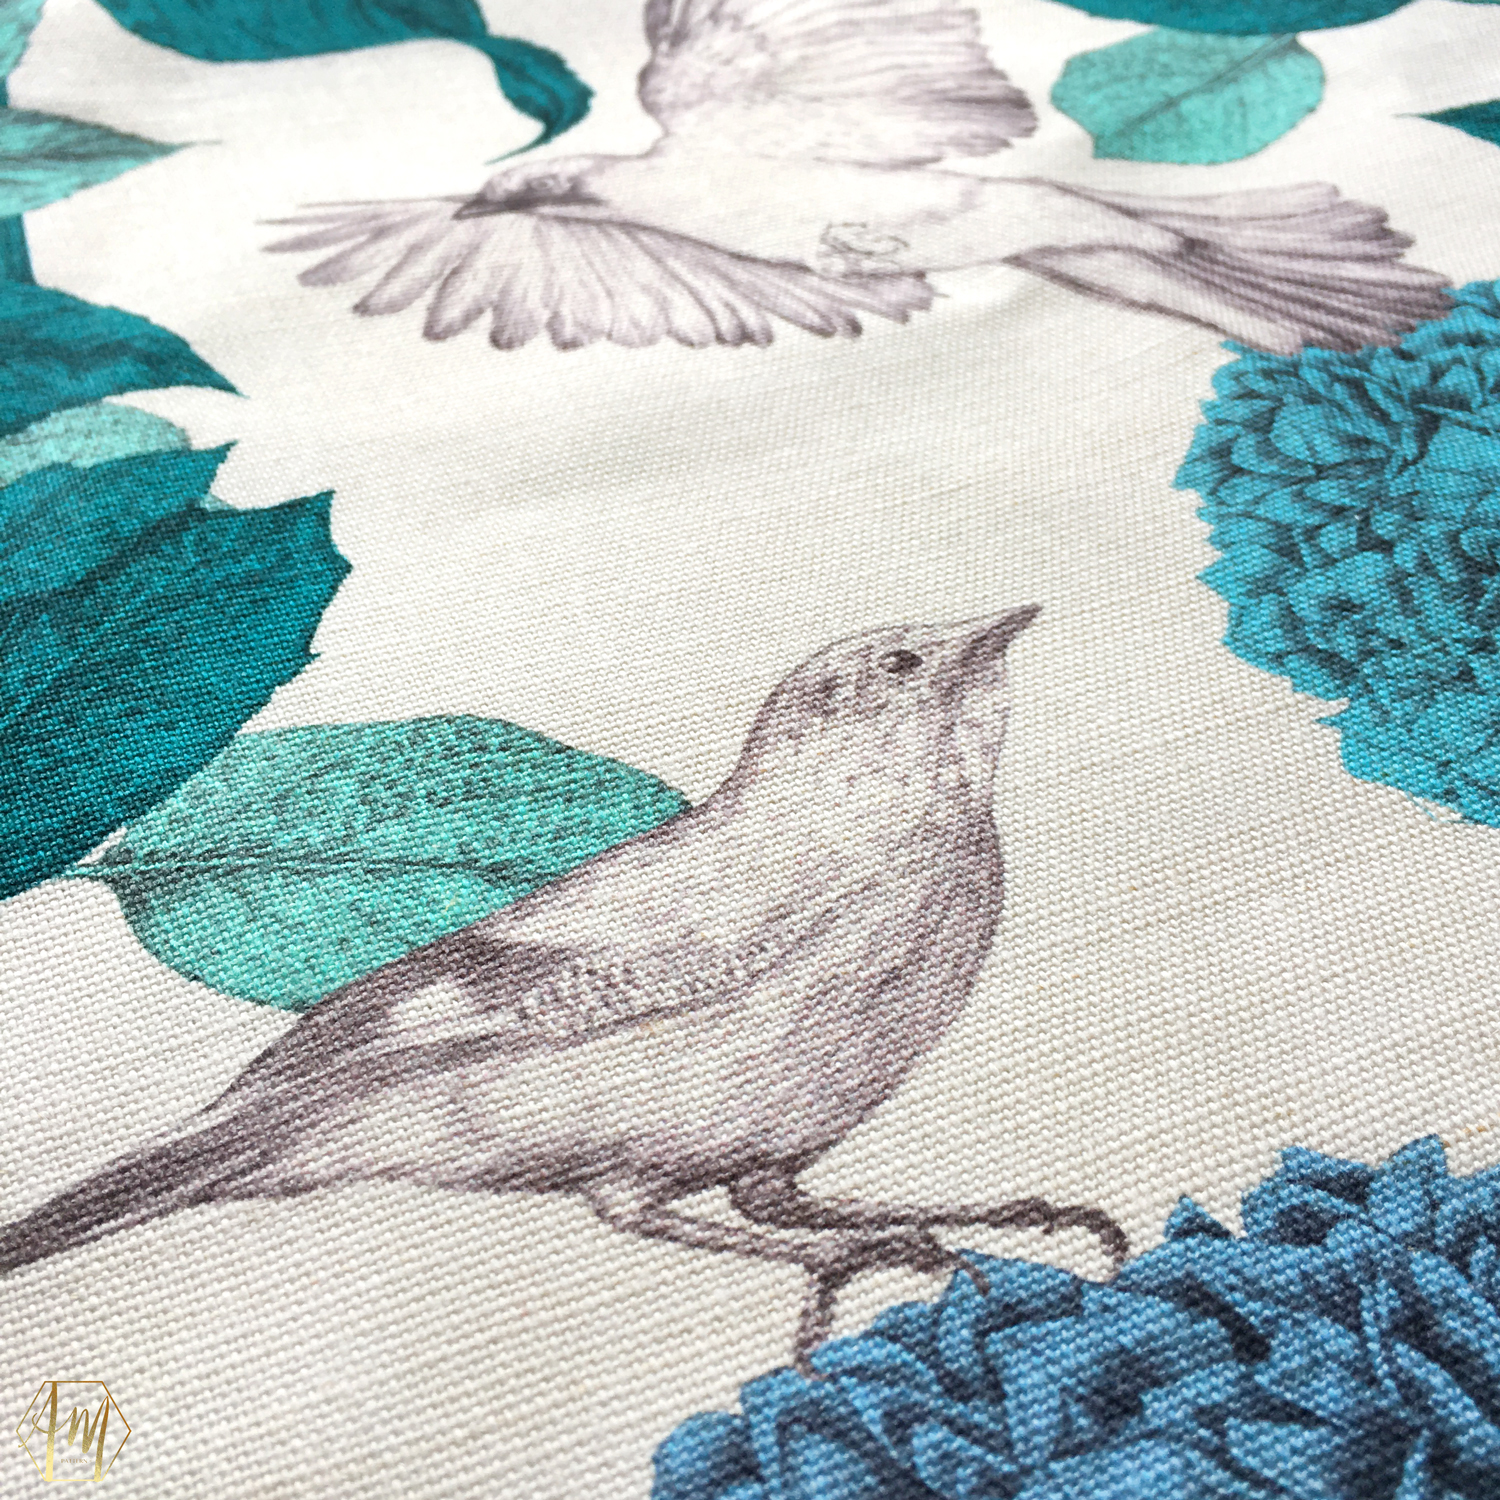 April Mawhinney Design Studio | Home Decor Collection | Linen fabrics | Hand drawn and Illustrated.jpg